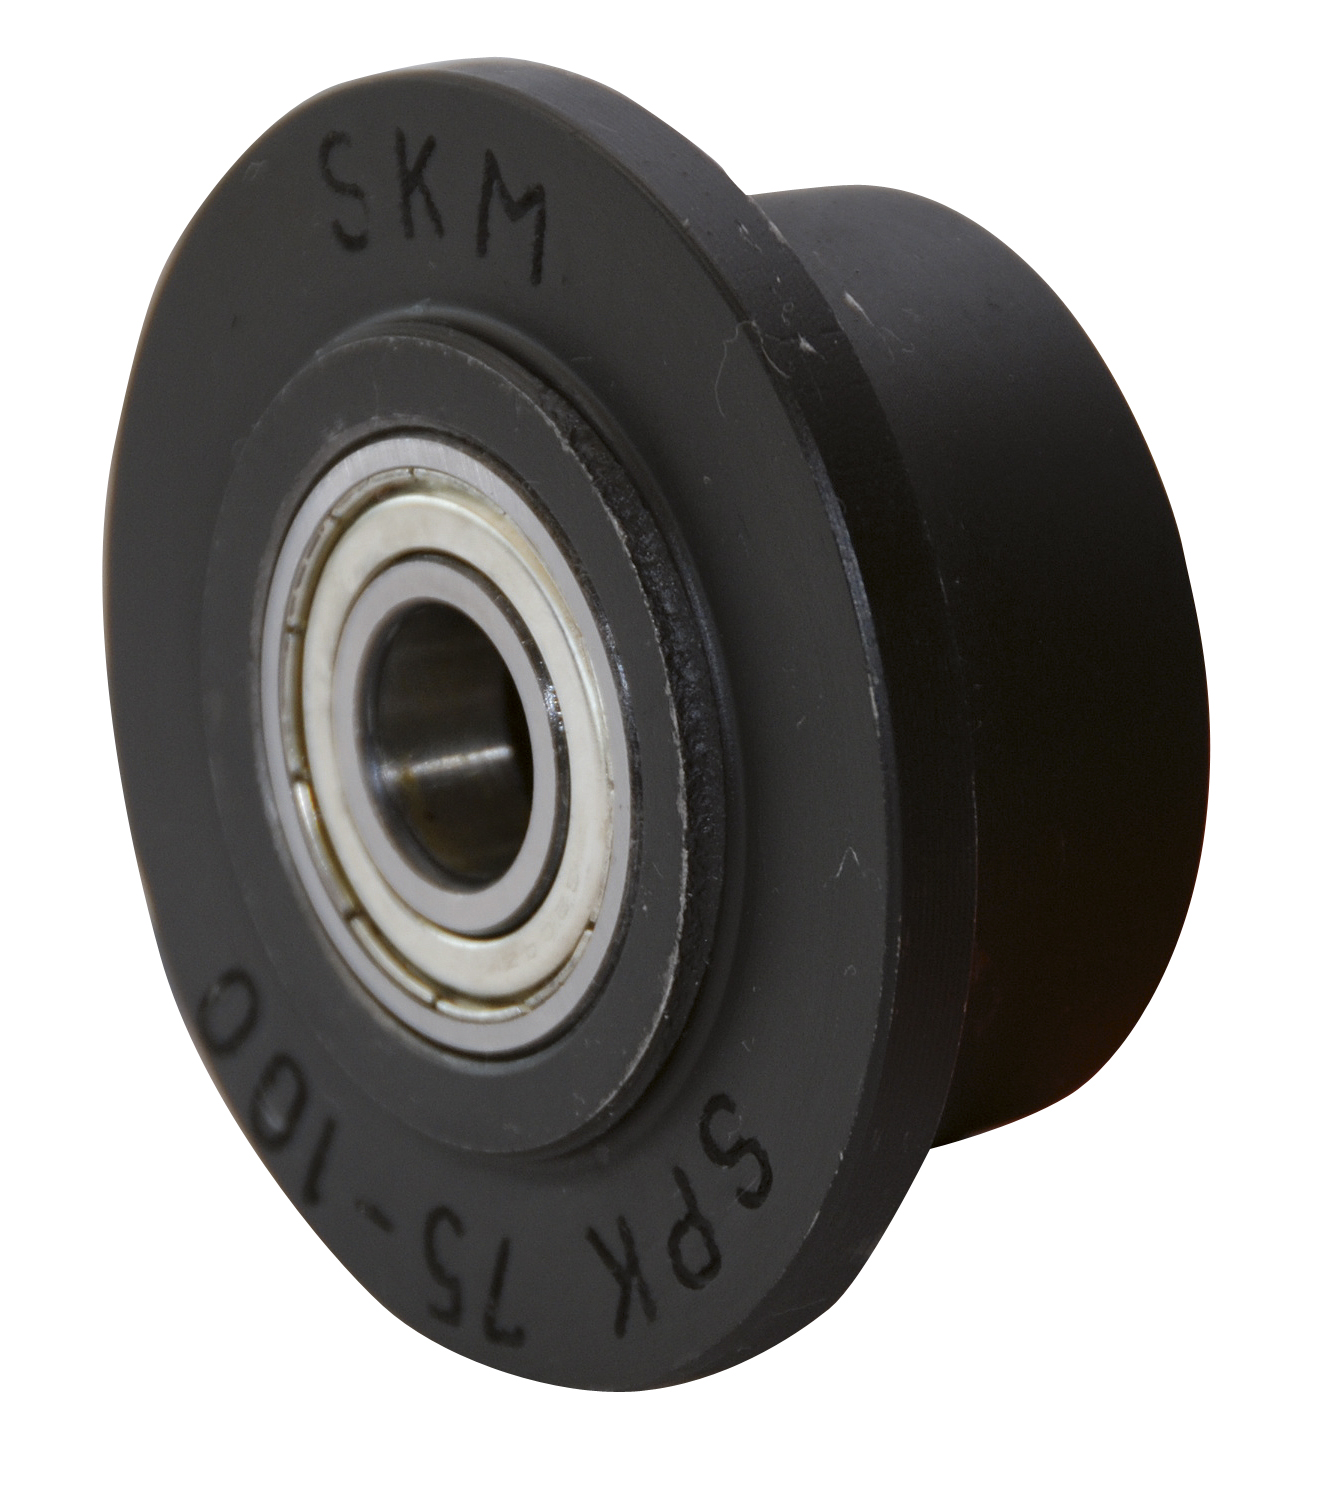 Model Flanged wheels